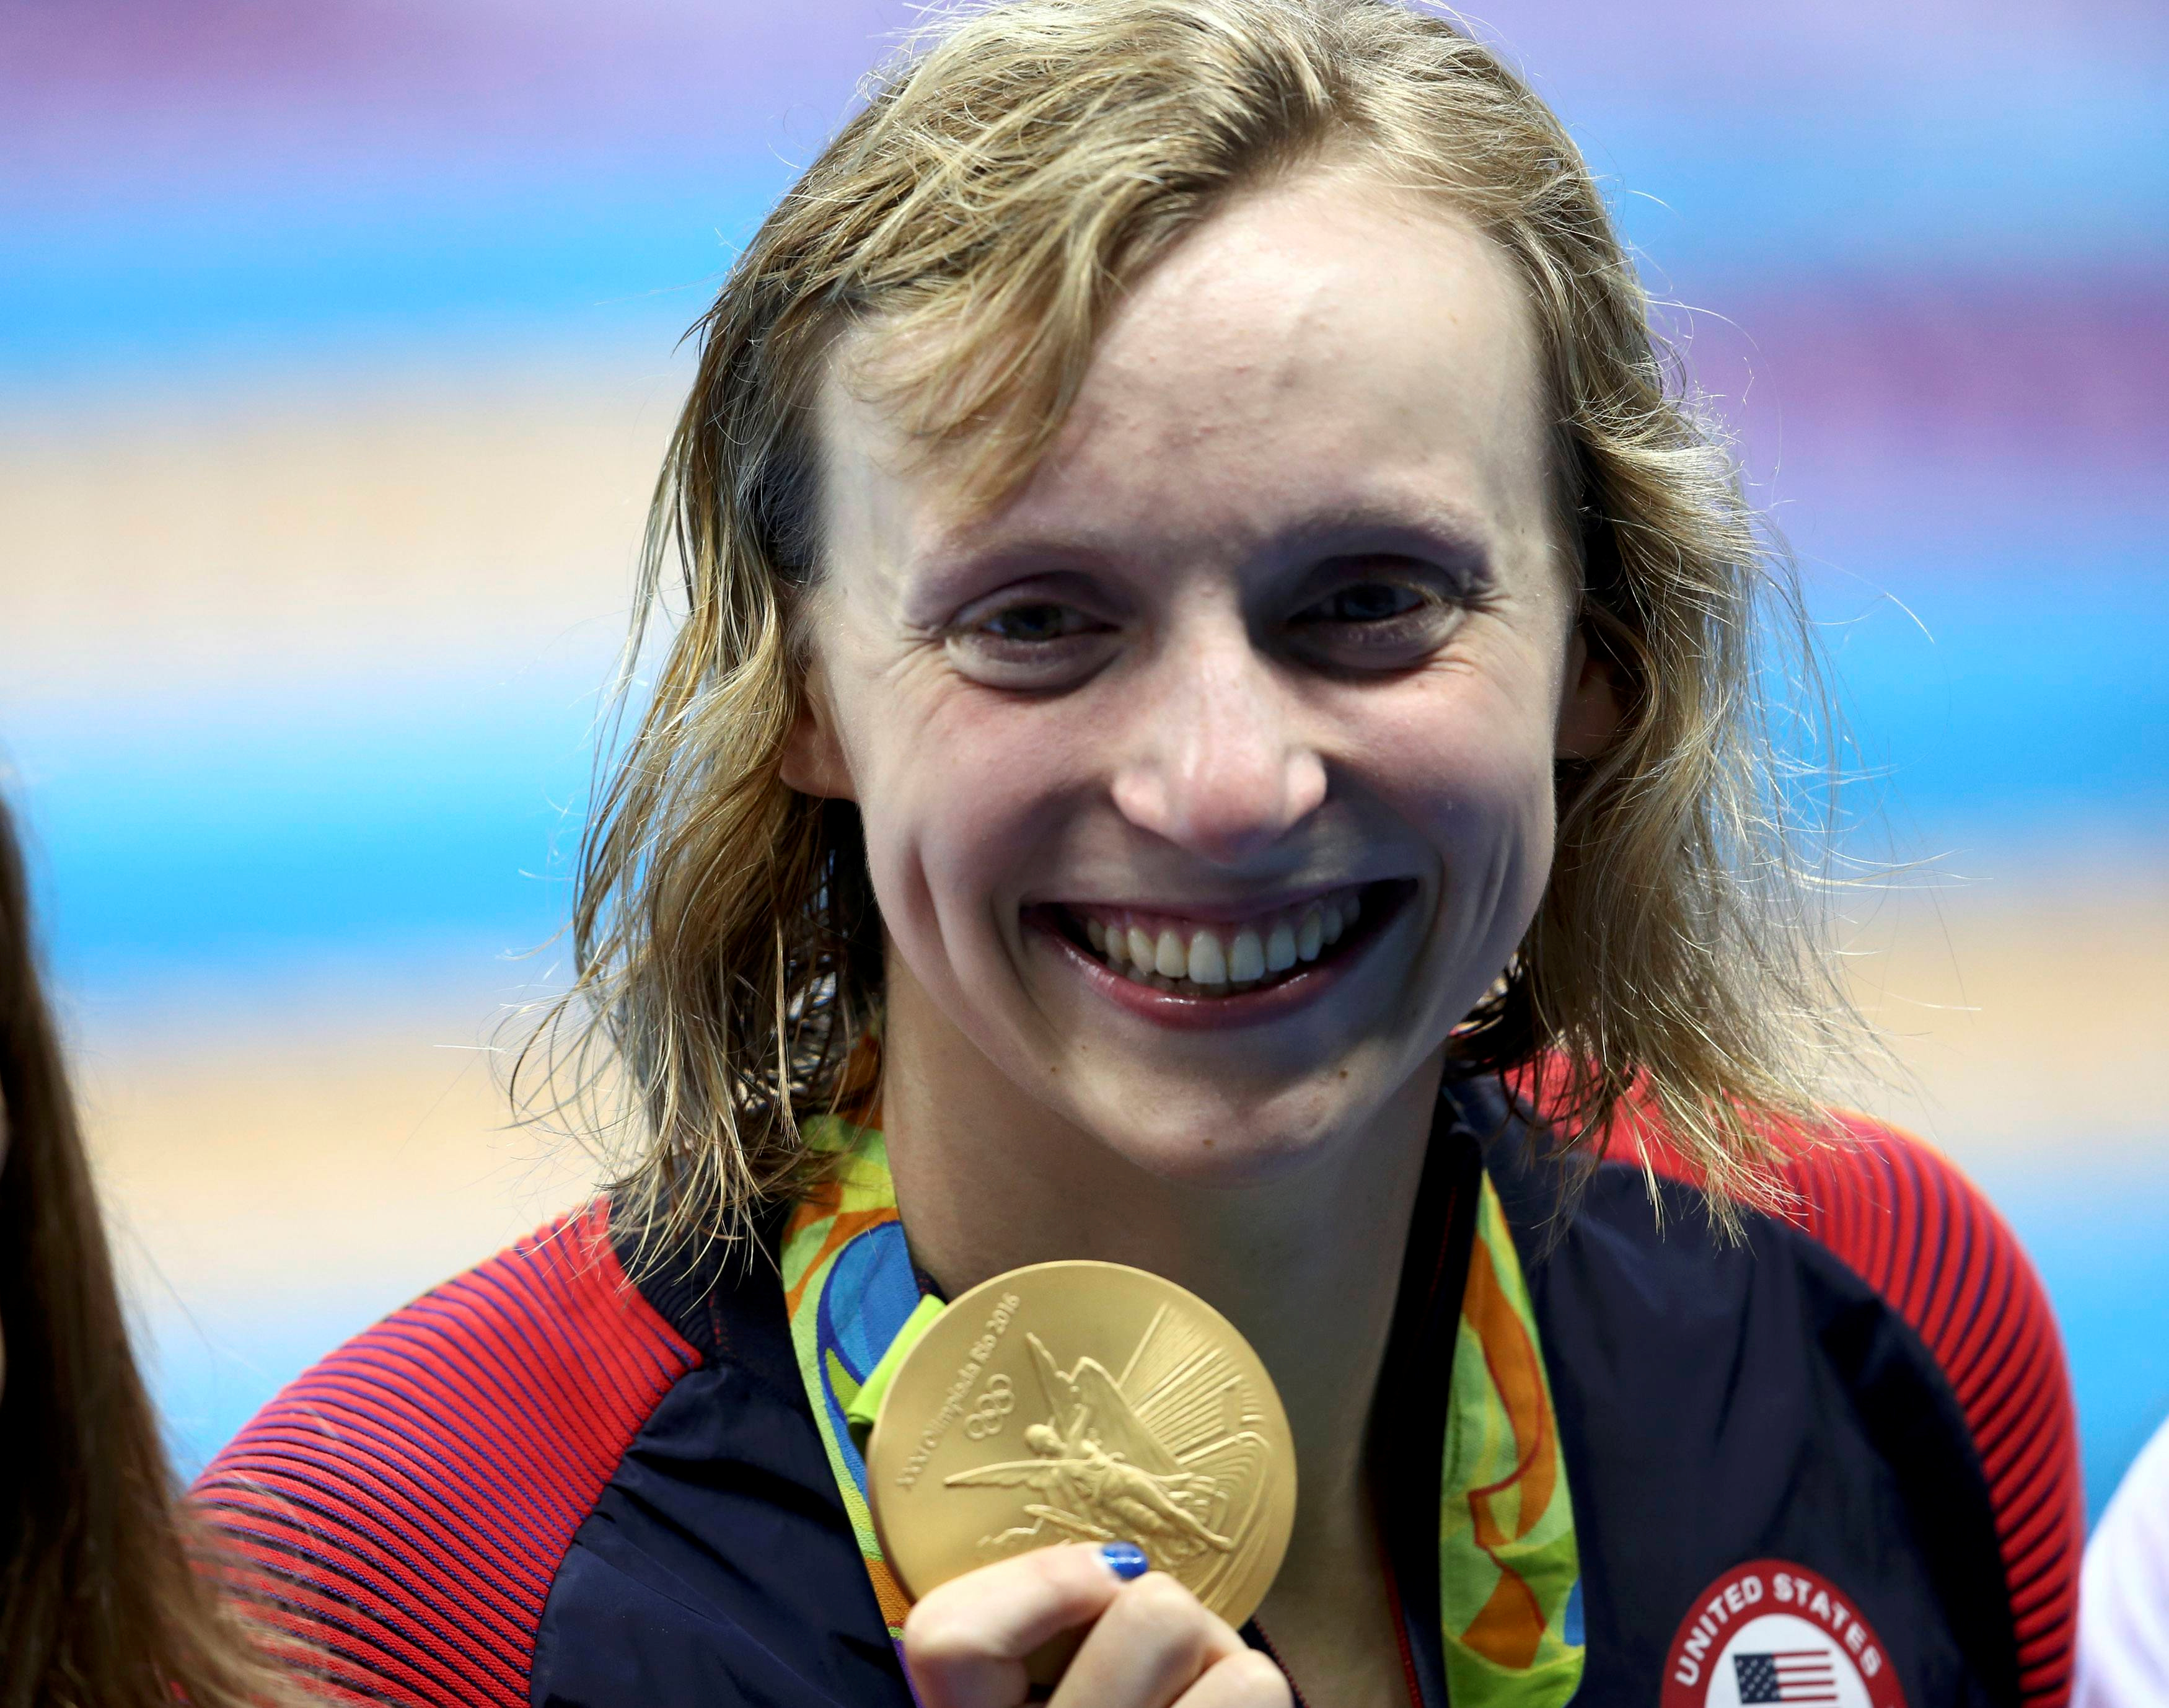 2016 Rio Olympics - Swimming - Katie Ledecky (USA) poses with her Olympic 800m freestyle gold medal - Olympic Aquatics Stadium - Rio de Janeiro, Brazil - 12/08/2016.    REUTERS/Marcos Brindicci /File Photo